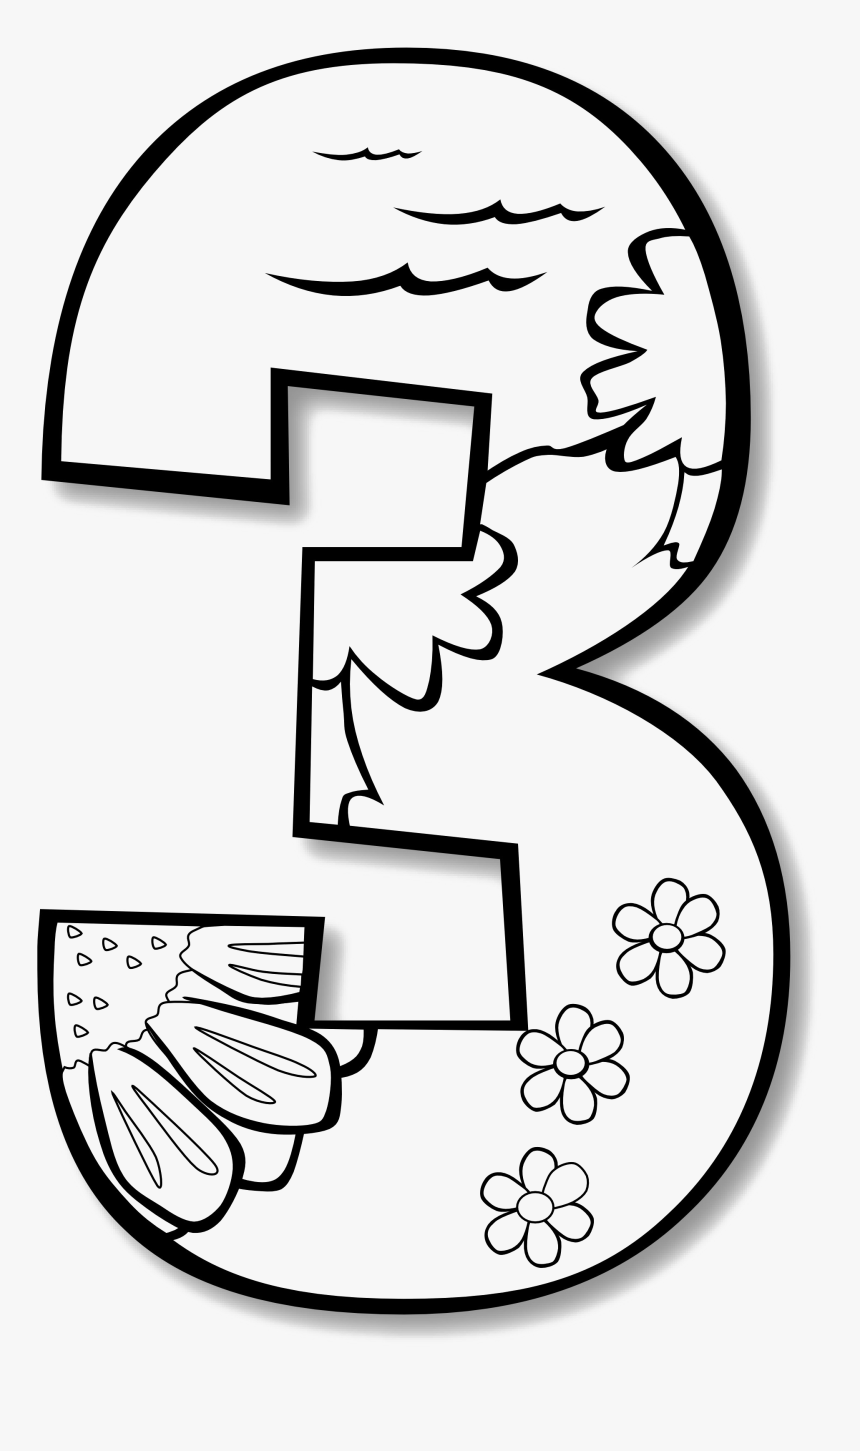 3 Number Png Picture - Creation Numbers Coloring Page, Transparent Png, Free Download